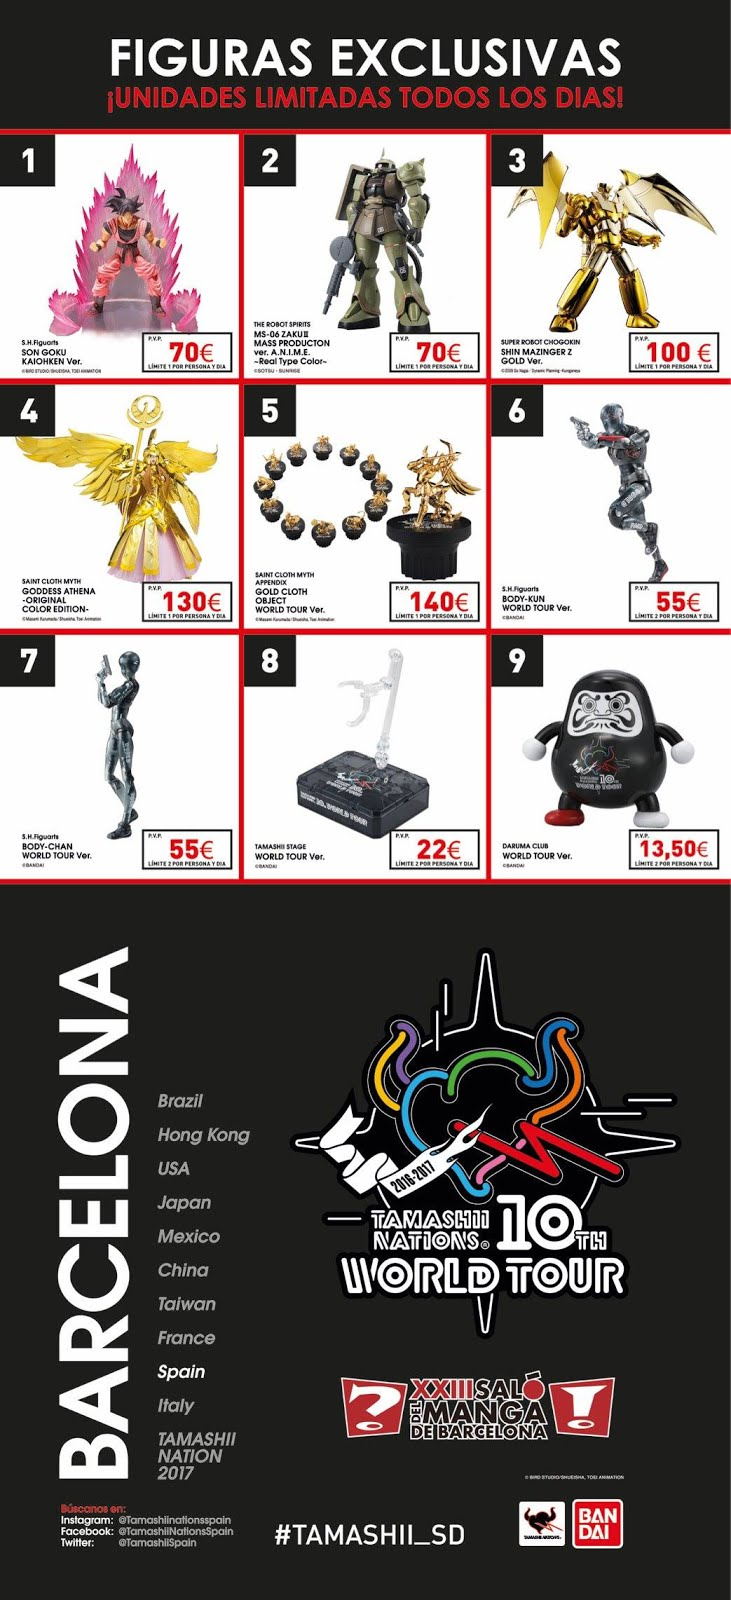 Precios finales de las figuras exclusivas del Tamashii World Tour 2017 Barcelona - Tamashii Nations